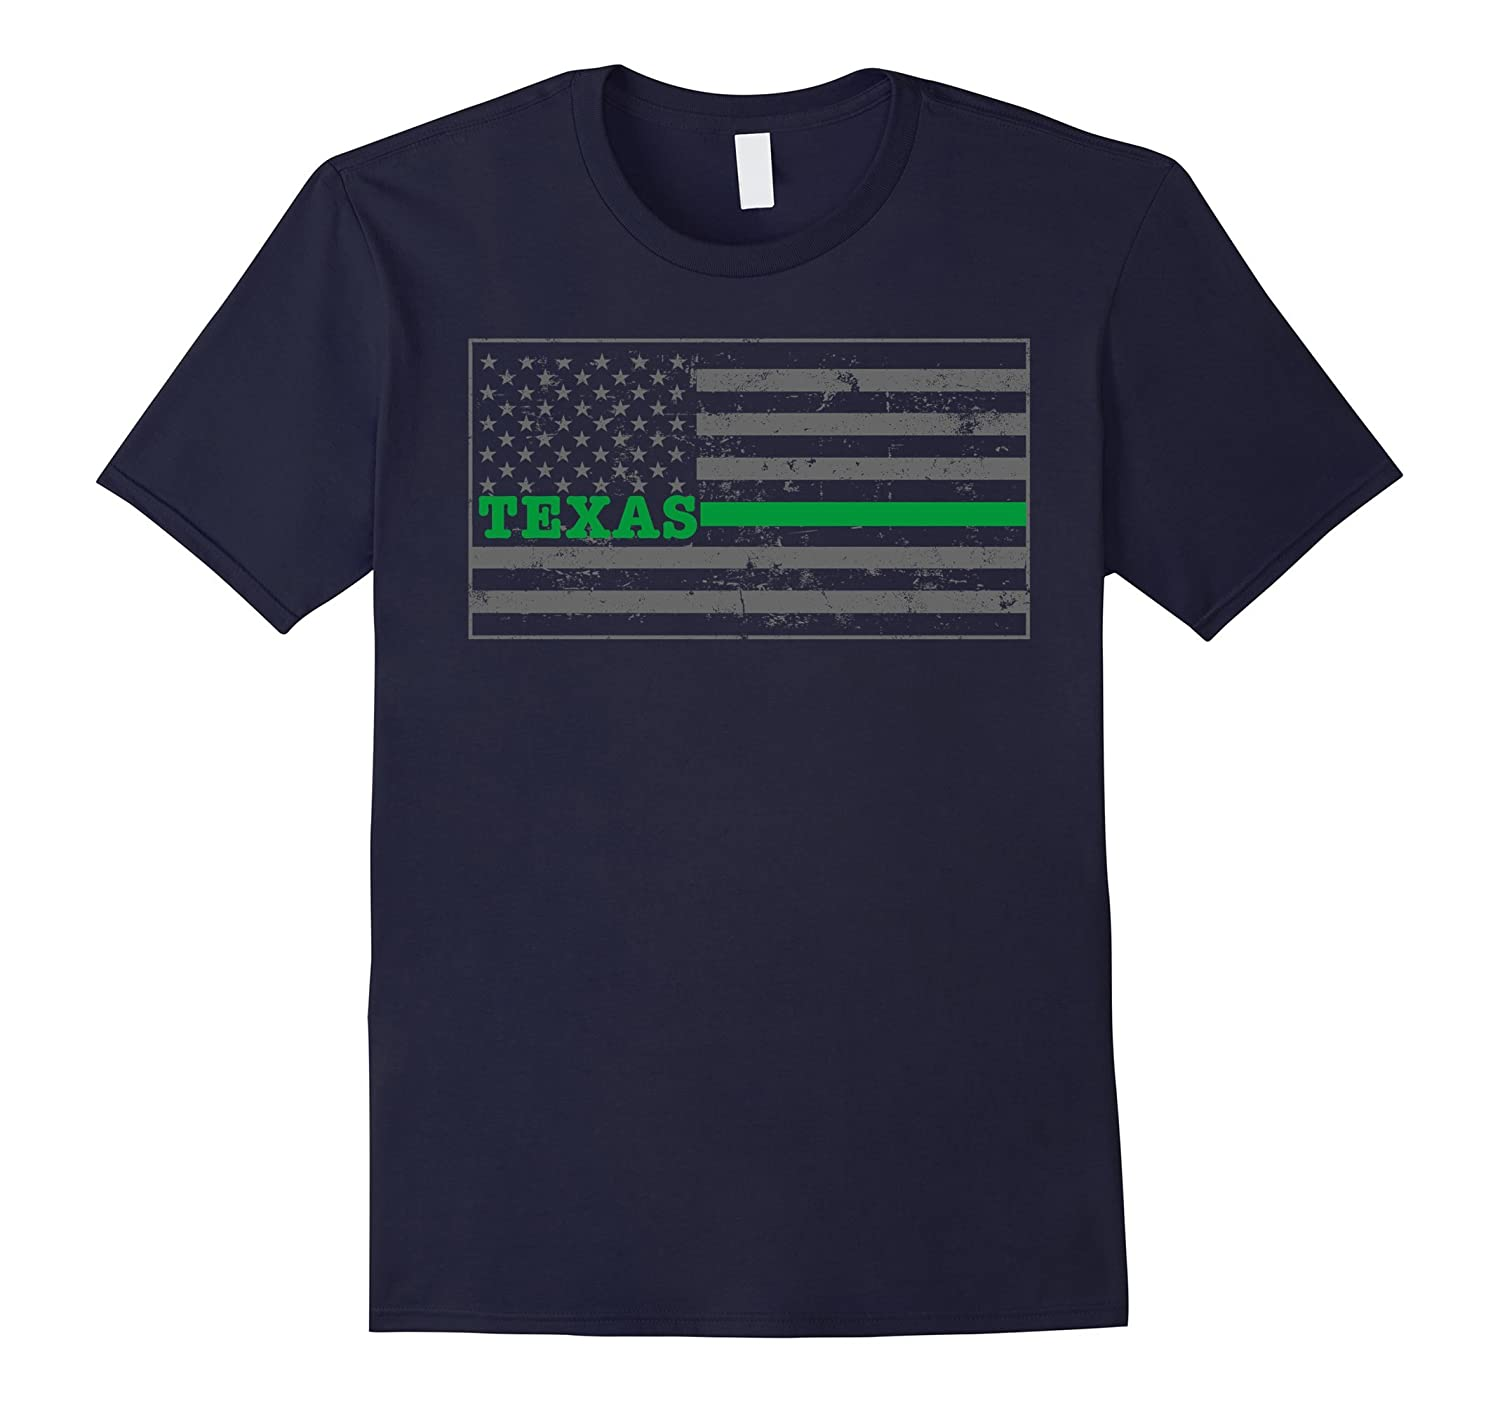 Texas Military Border Patrol Shirt Thin Green Line Shirt-Vaci